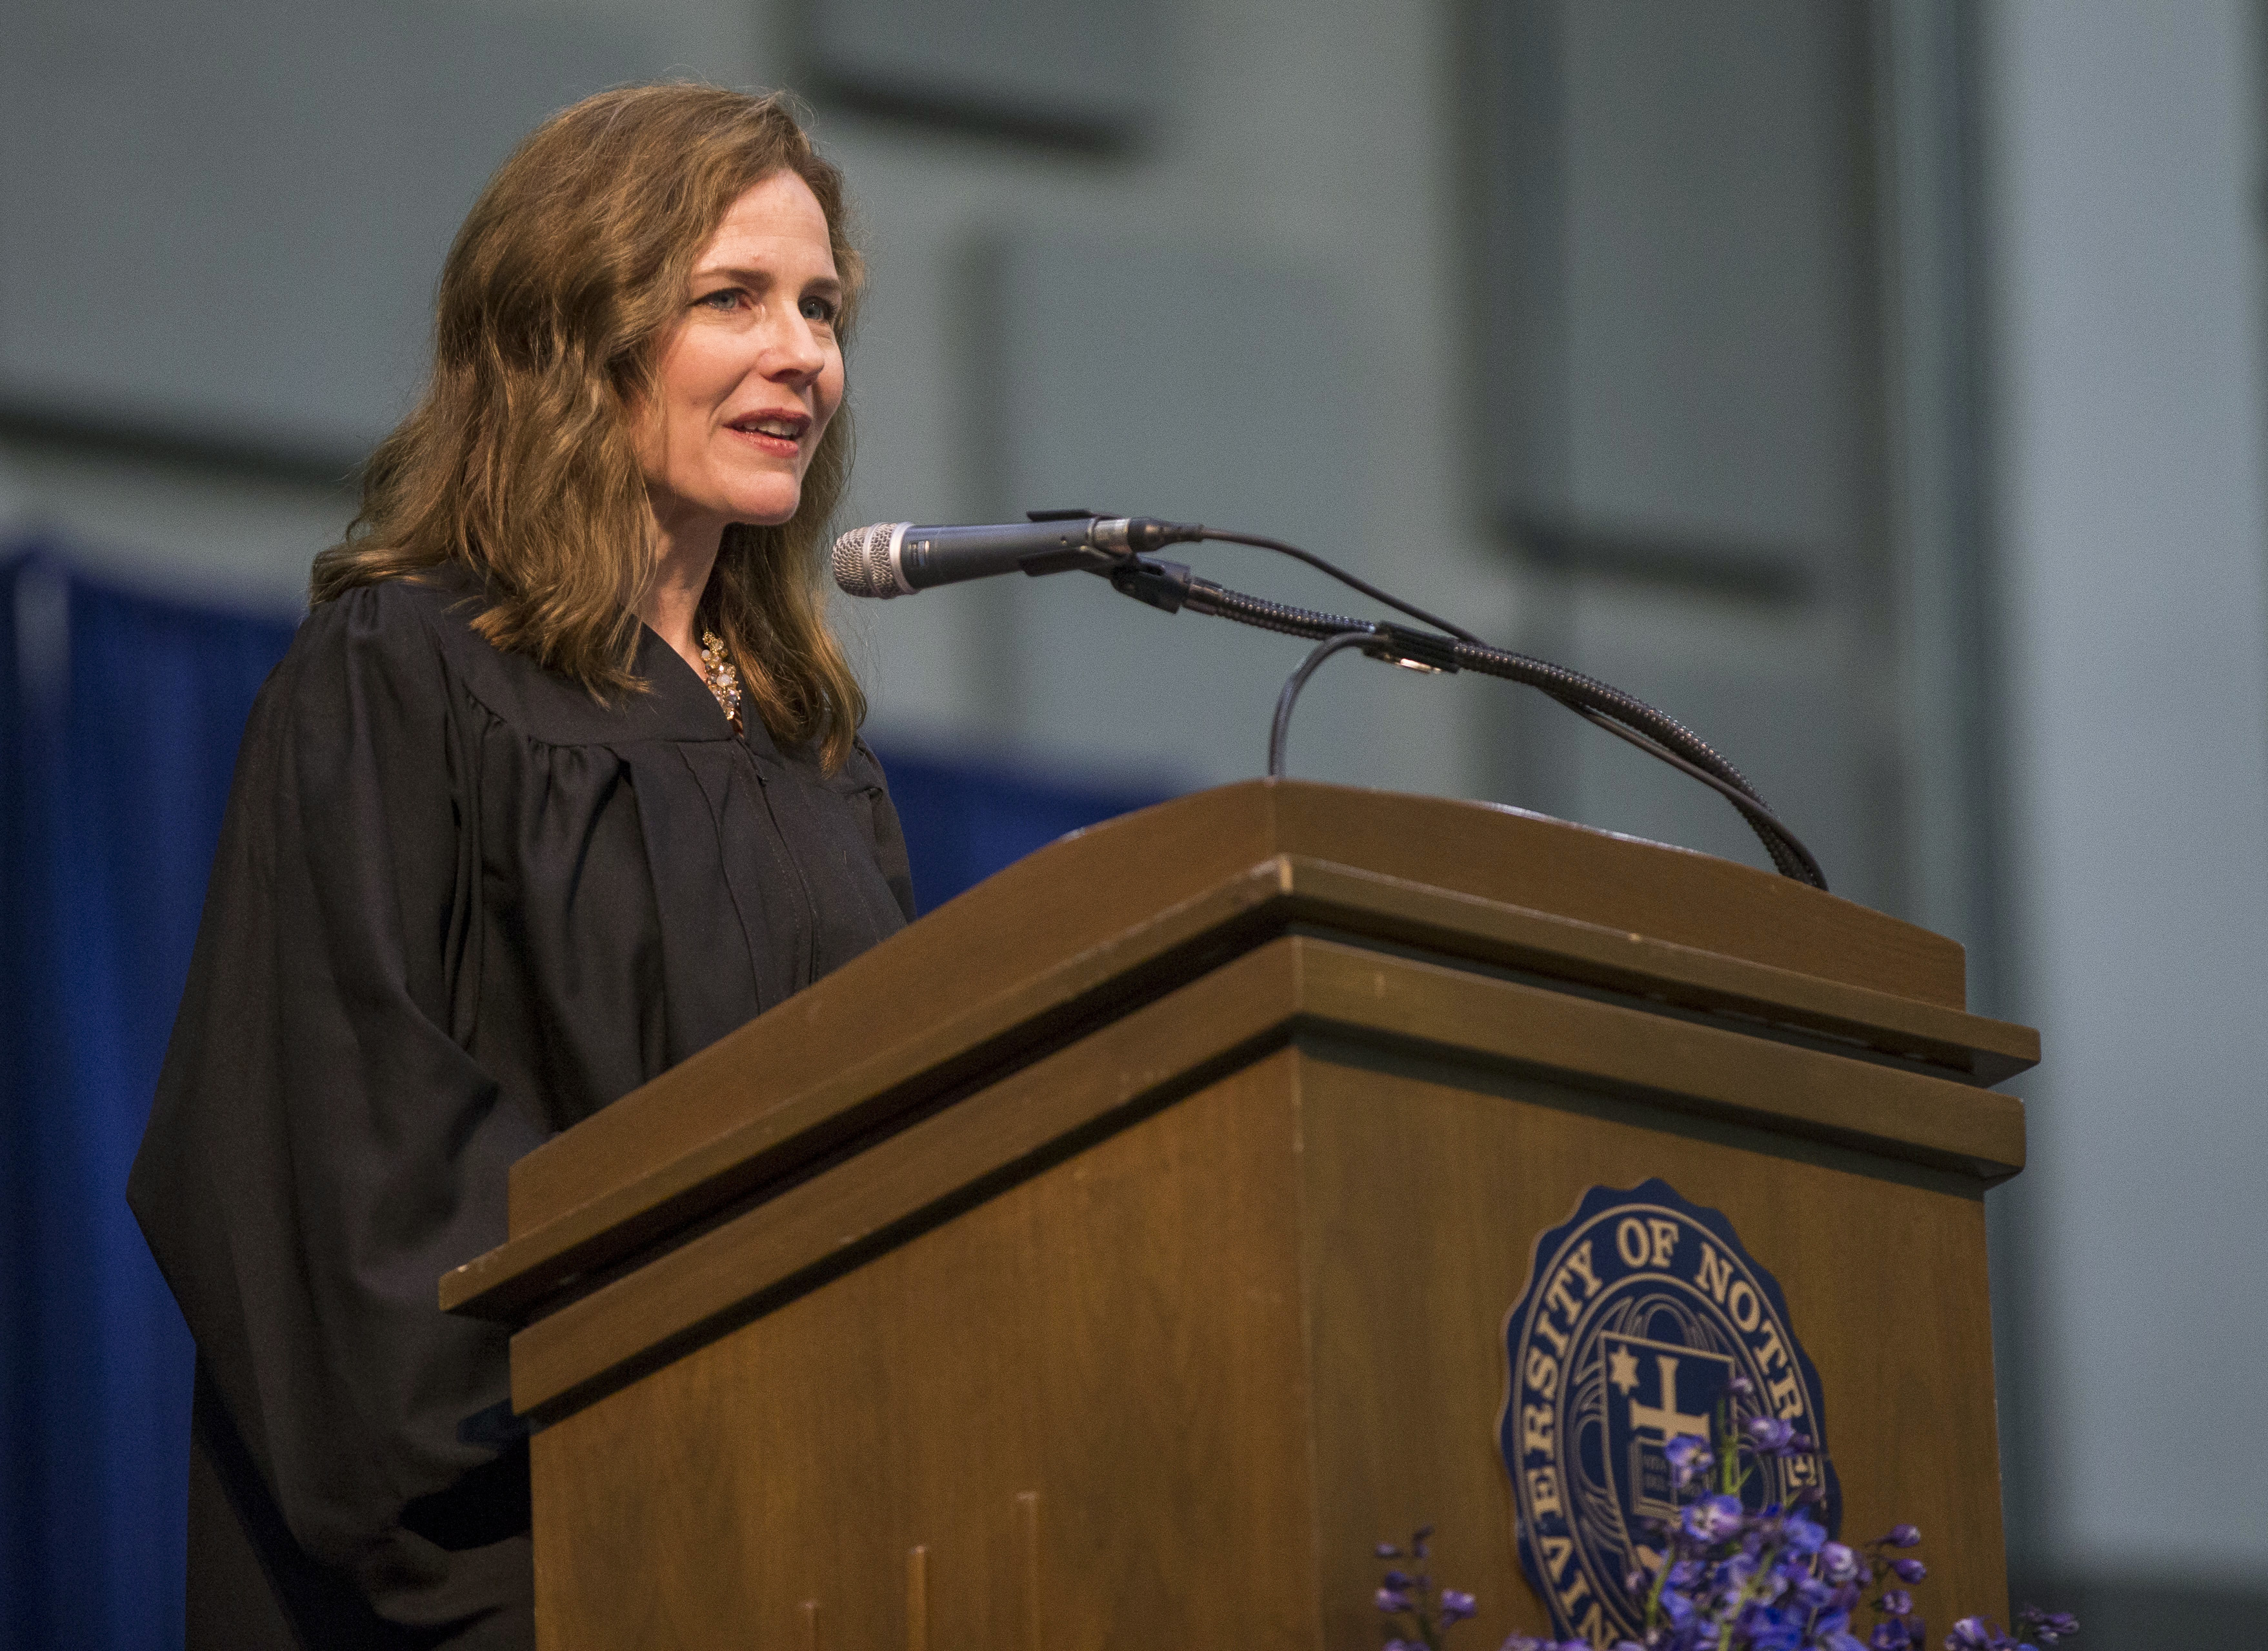 20180519 In this May 19, 2018, photo, Amy Coney Barrett, United States Court of Appeals for the Seventh Circuit judge, speaks during the University of Notre Dame's Law School commencement ceremony at the University of Notre Dame in South Bend, Ind. (Robert Franklin/South Bend Tribune via AP) Robert Franklin South Bend Tribune MAY 19, 2018, PHOTO. MANDATORY CREDIT